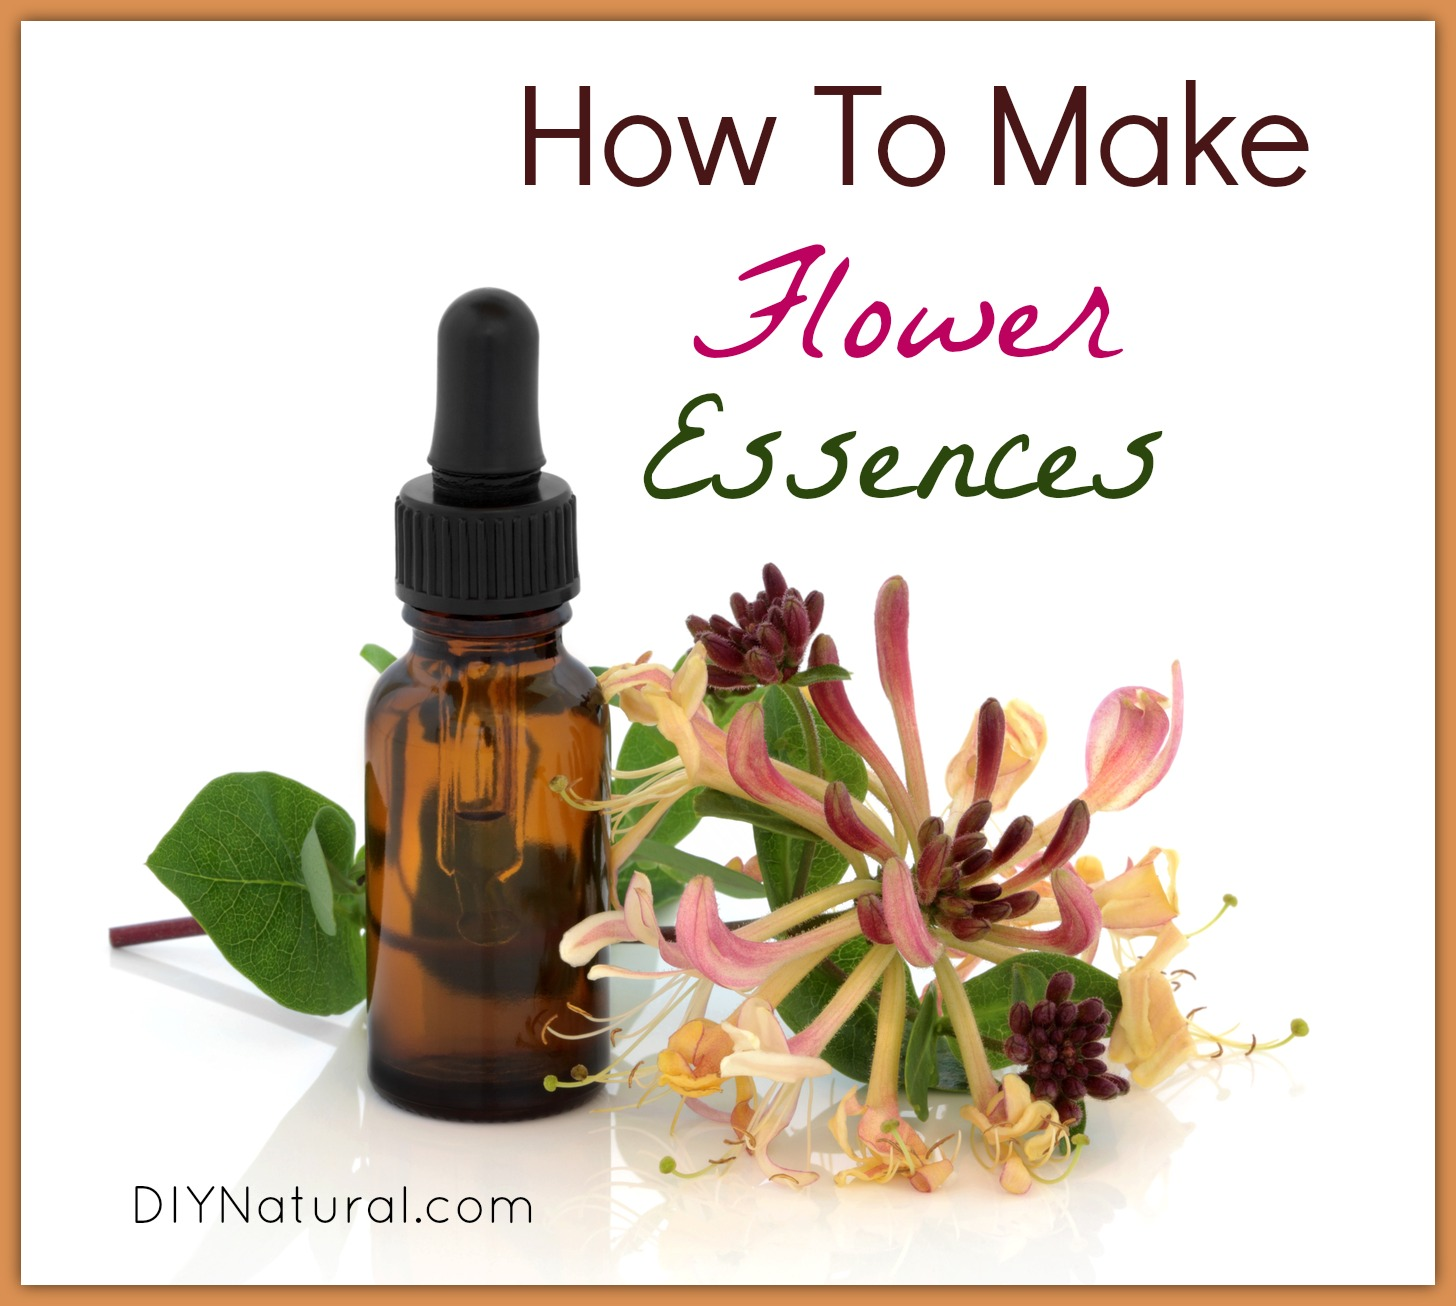 How to Make Flower Essences and Ideas to Get You Started